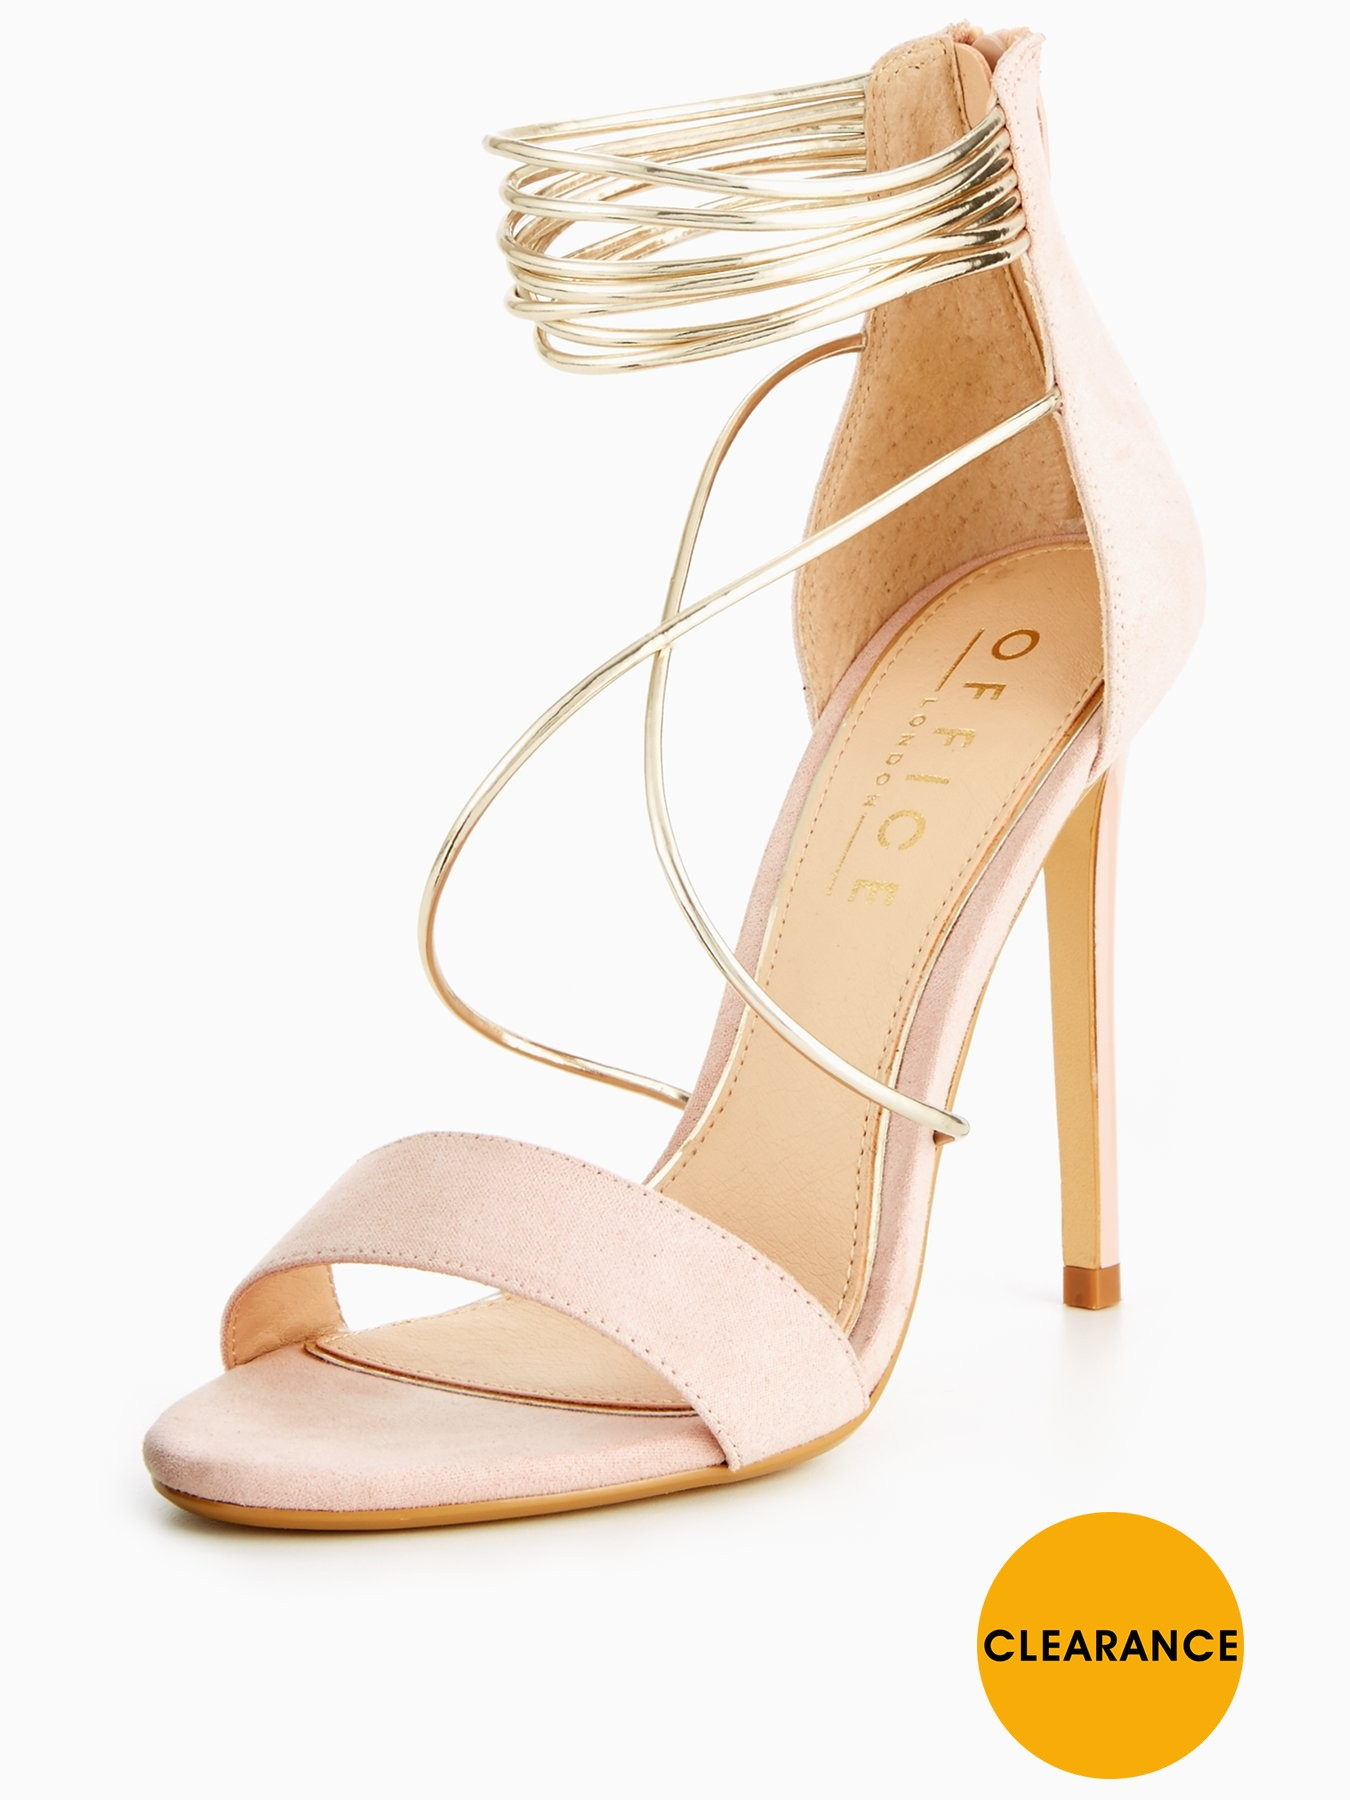 OFFICE Hollywood Heeled Sandal 1600178065 Women's Shoes OFFICE Heels